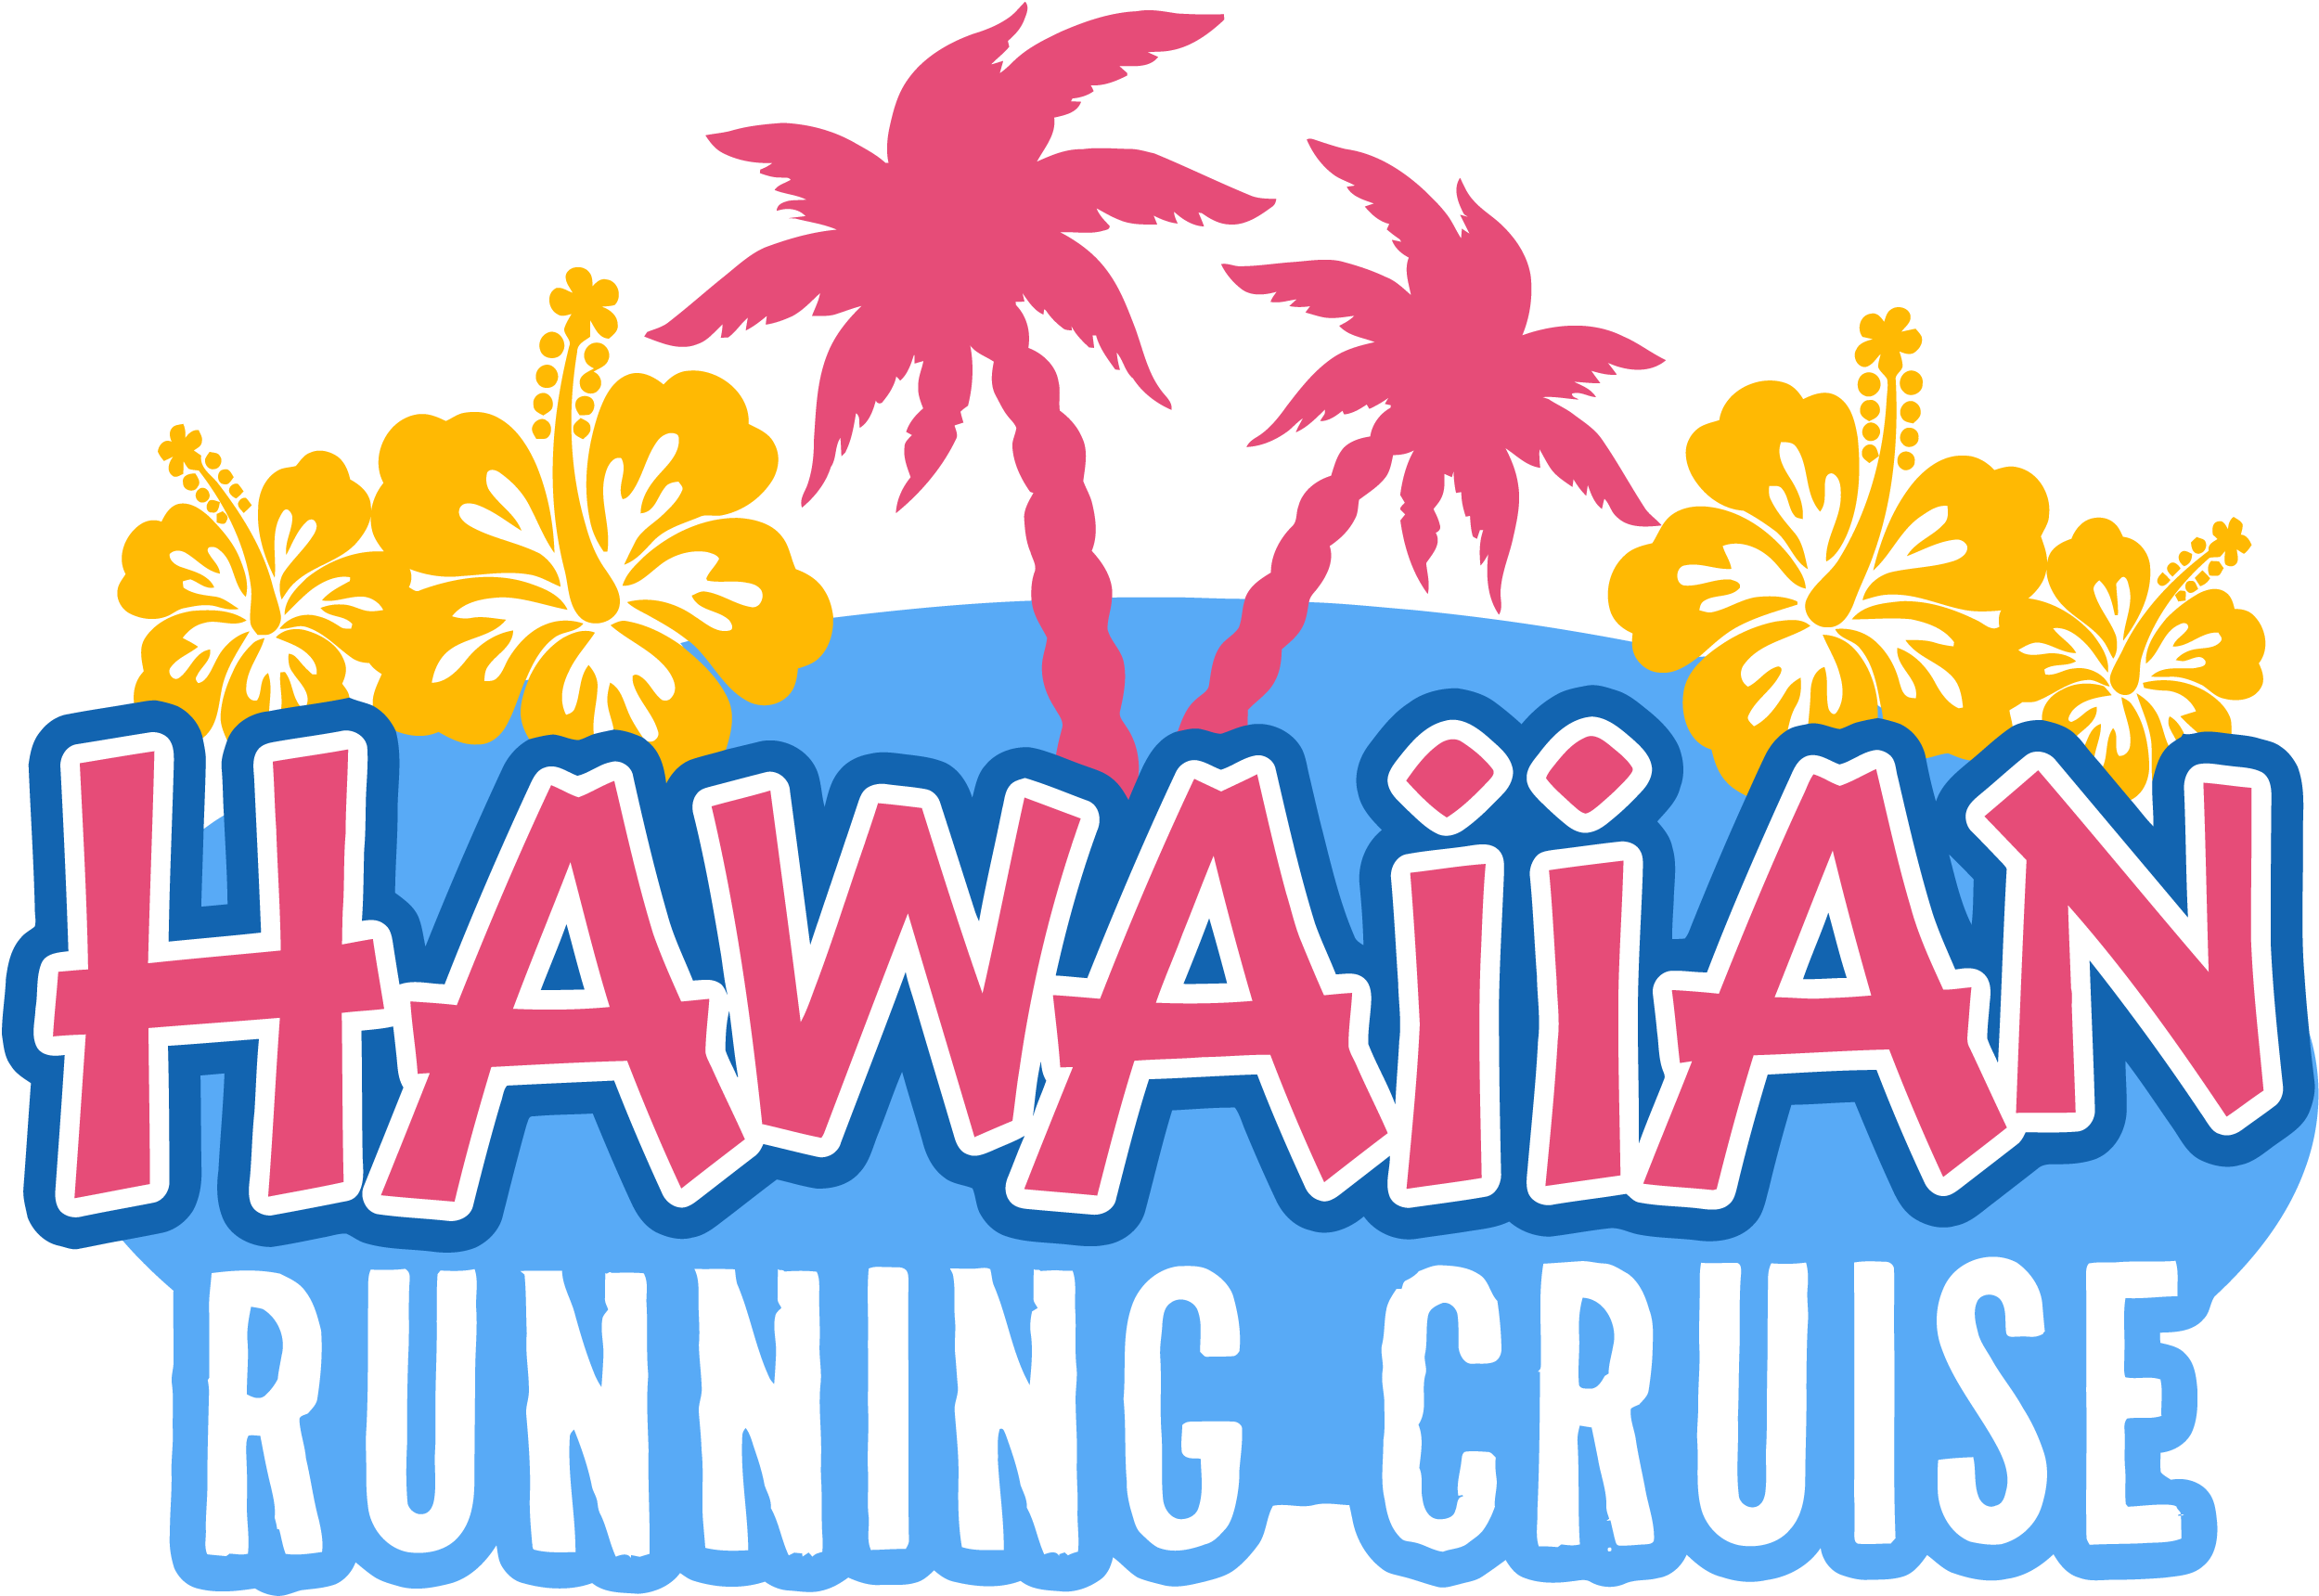 Running Cruise The Hawaiian Running Cruise.